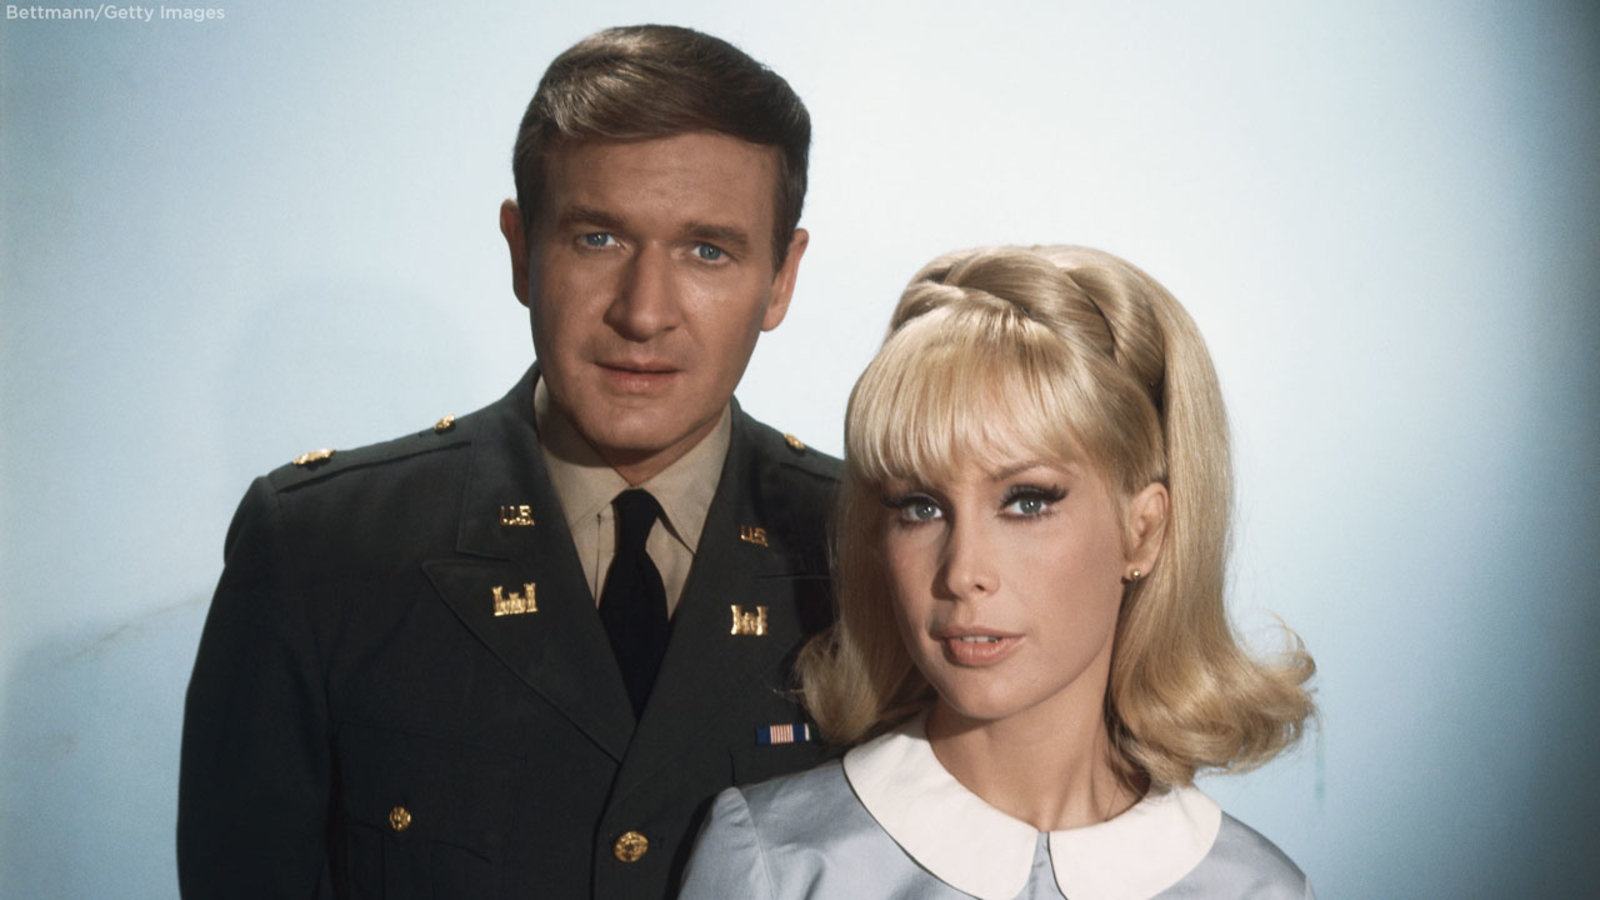 Bill Daily Sidekick On I Dream Of Jeannie And The Bob Newhart